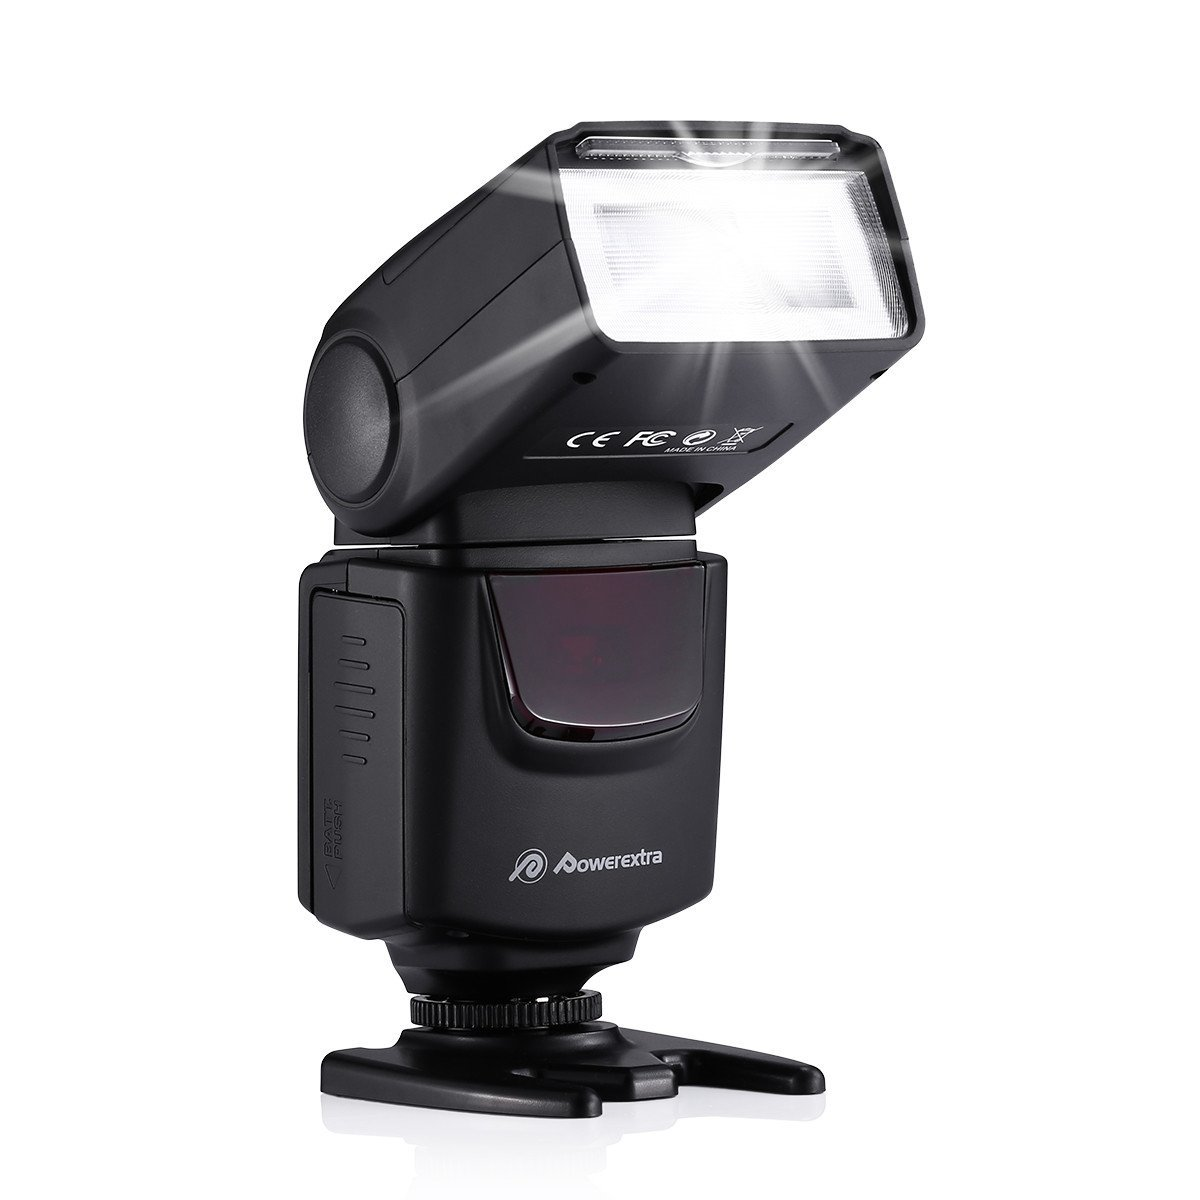 Powerextra DF-400 Speedlite Camera Flash for Canon Nikon Pentax Samsung Fujifilm Olympus Panasonic Sigma Minolta Leica Ricoh DSLR Cameras and Others with Single-Contact Hotshoe